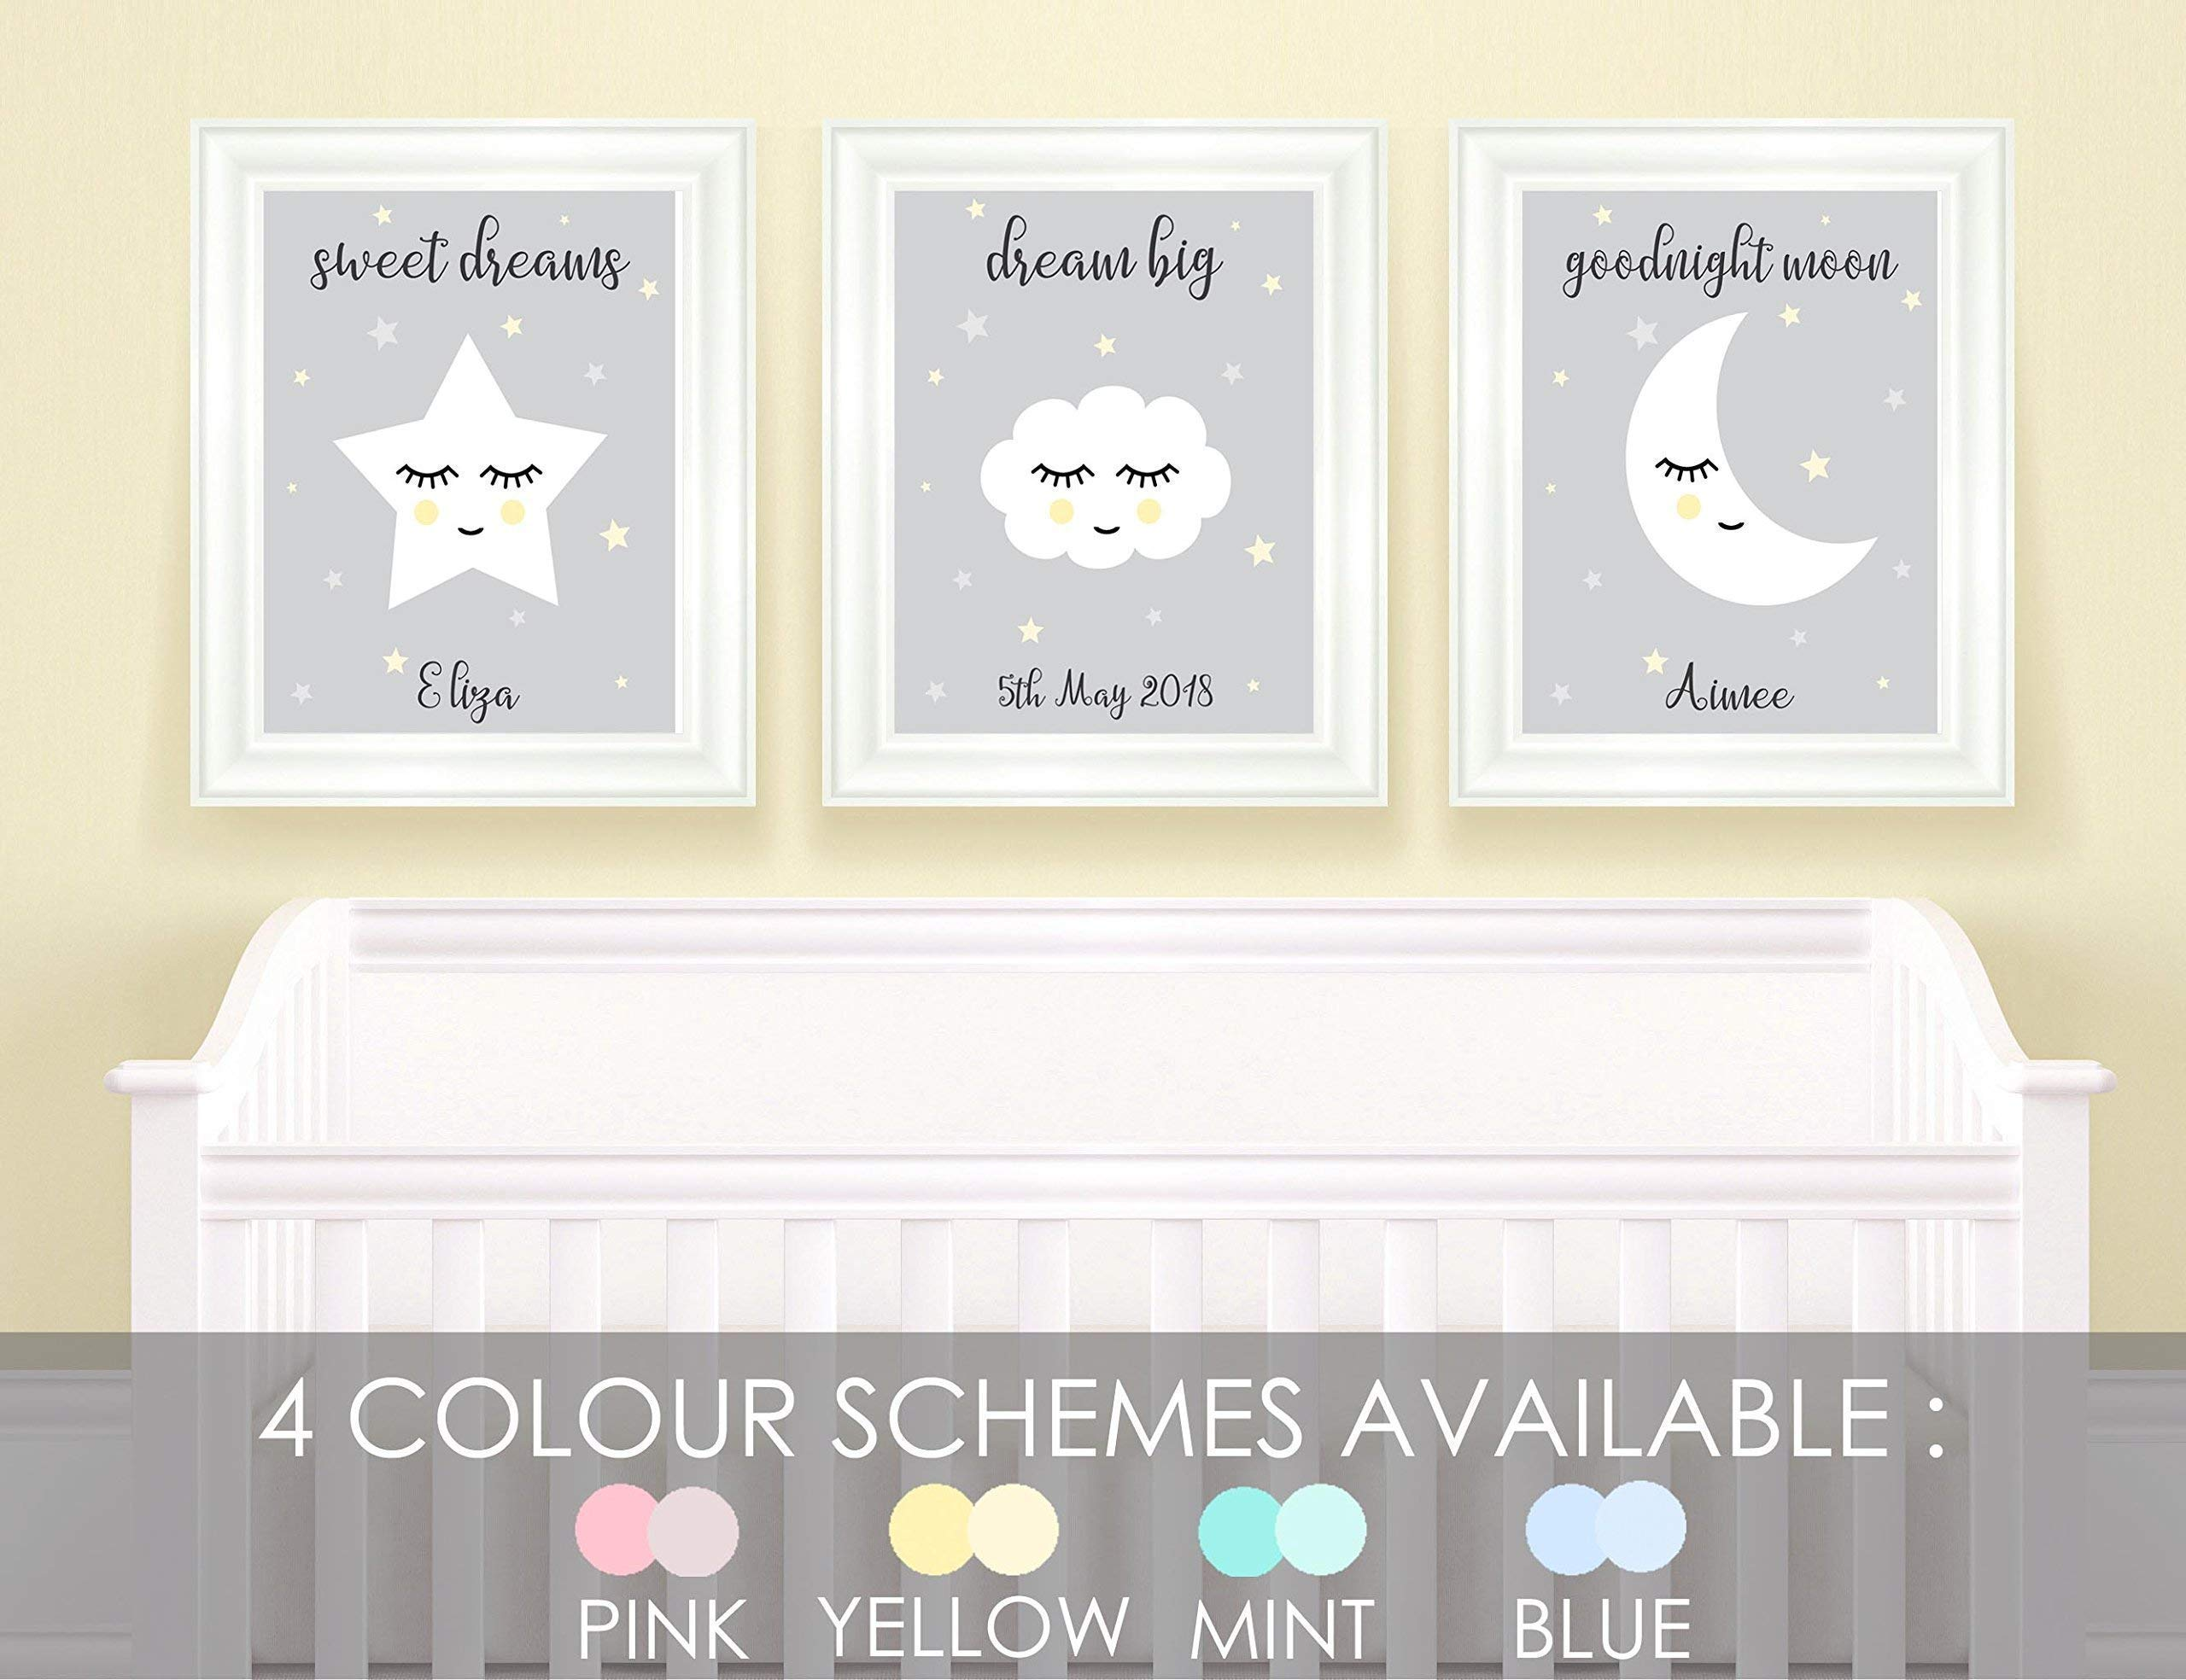 Personalised Nursery Pictures for Wall, Childrens Bedroom Stars Cloud  Nursery Decor Baby Room Prints